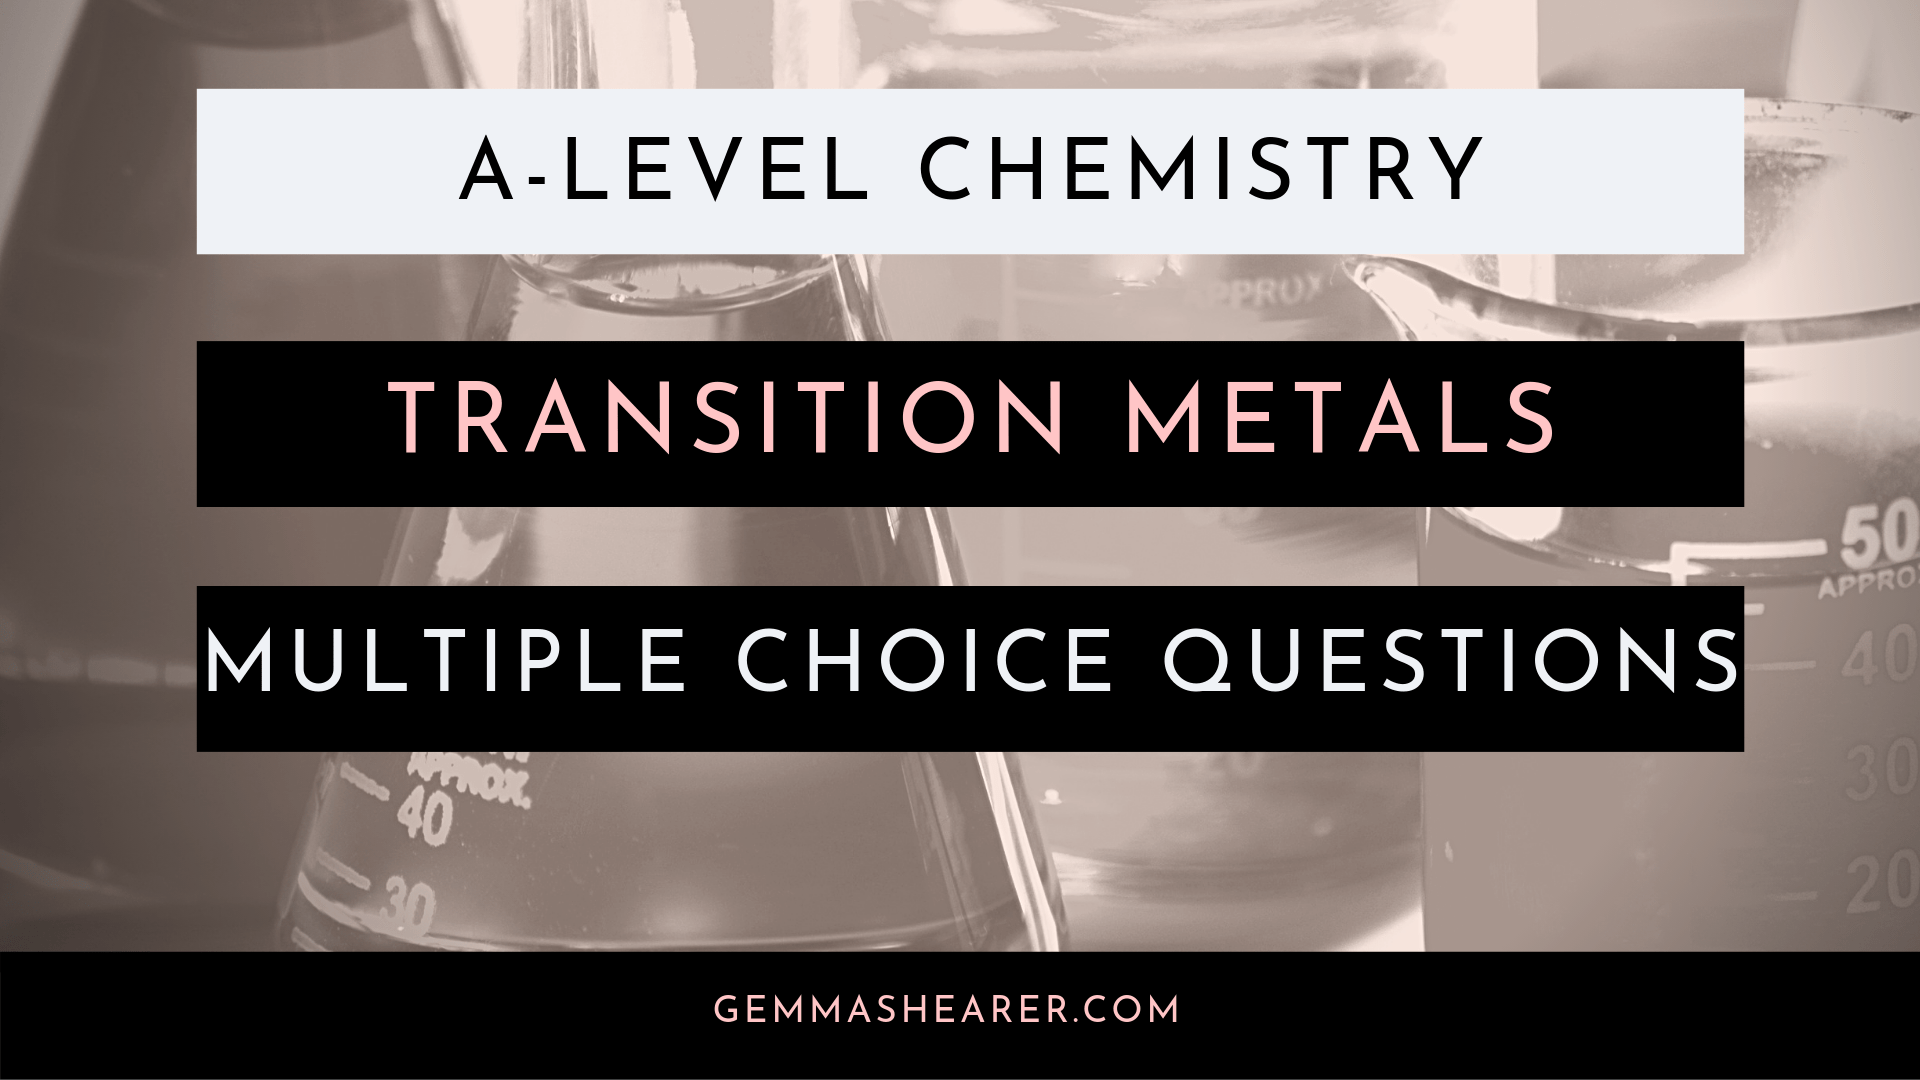 transition metals multiple choice questions